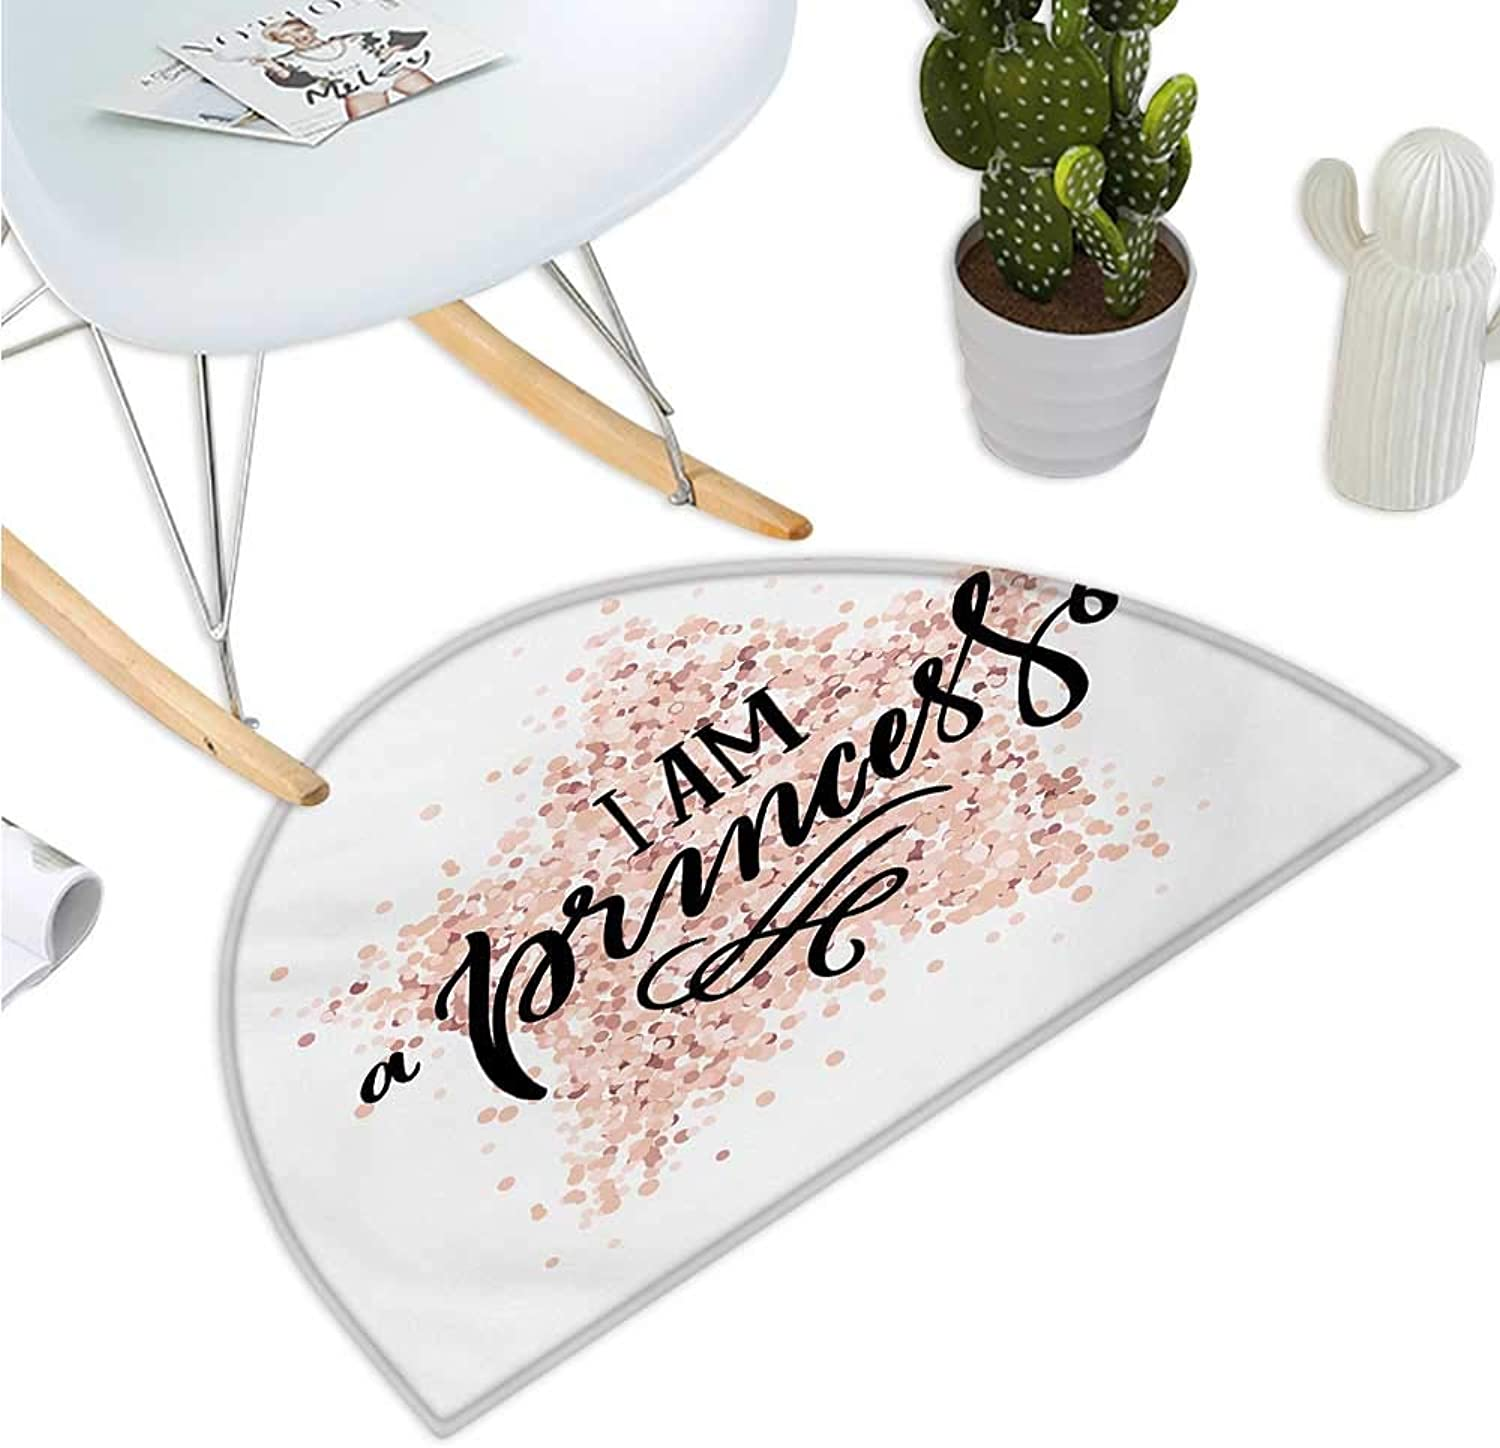 I am a Princess Semicircle Doormat Modern Calligraphic Quote on Dotted Background Hand Lettering Entry Door Mat H 51.1  xD 76.7  Black White and bluesh